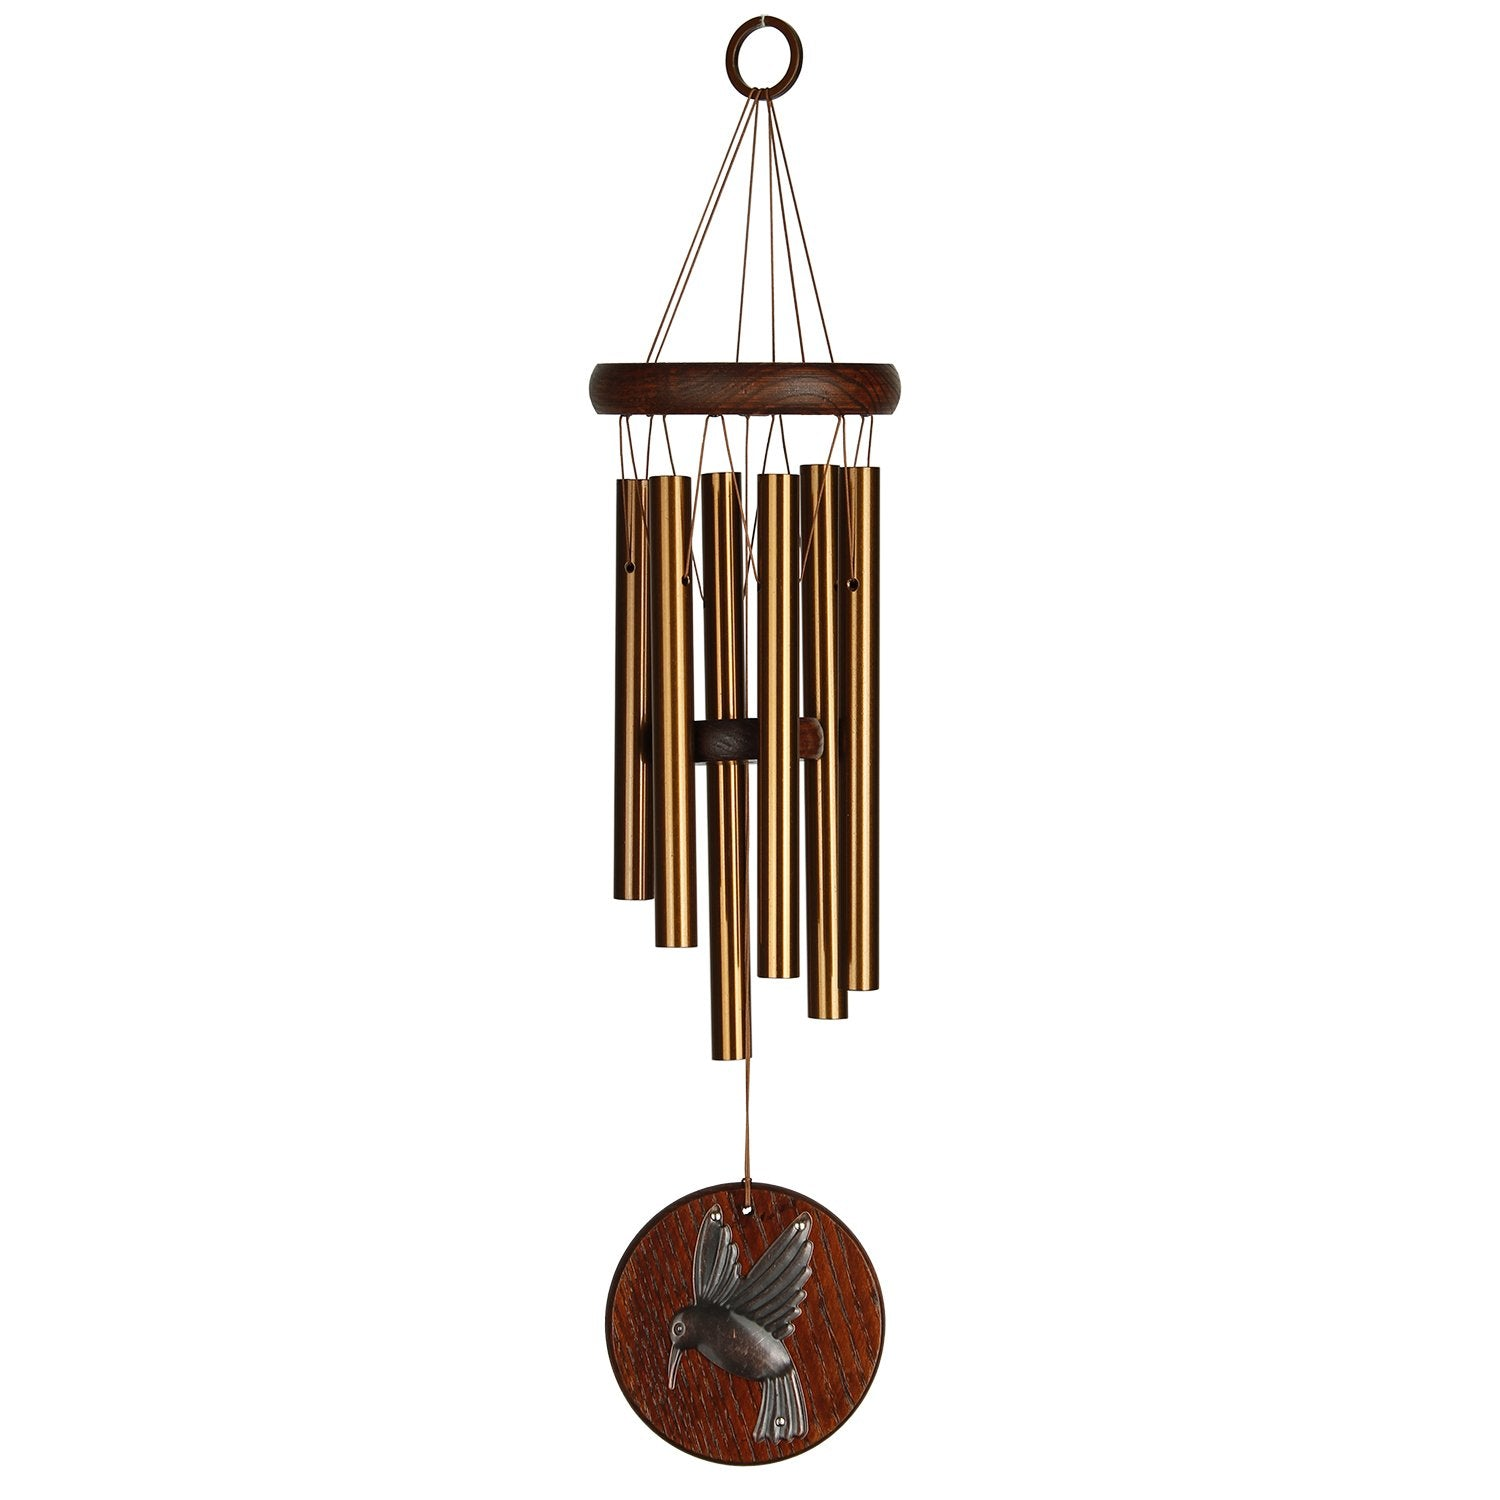 Woodstock Habitats Chime - Teak, Hummingbird full product image